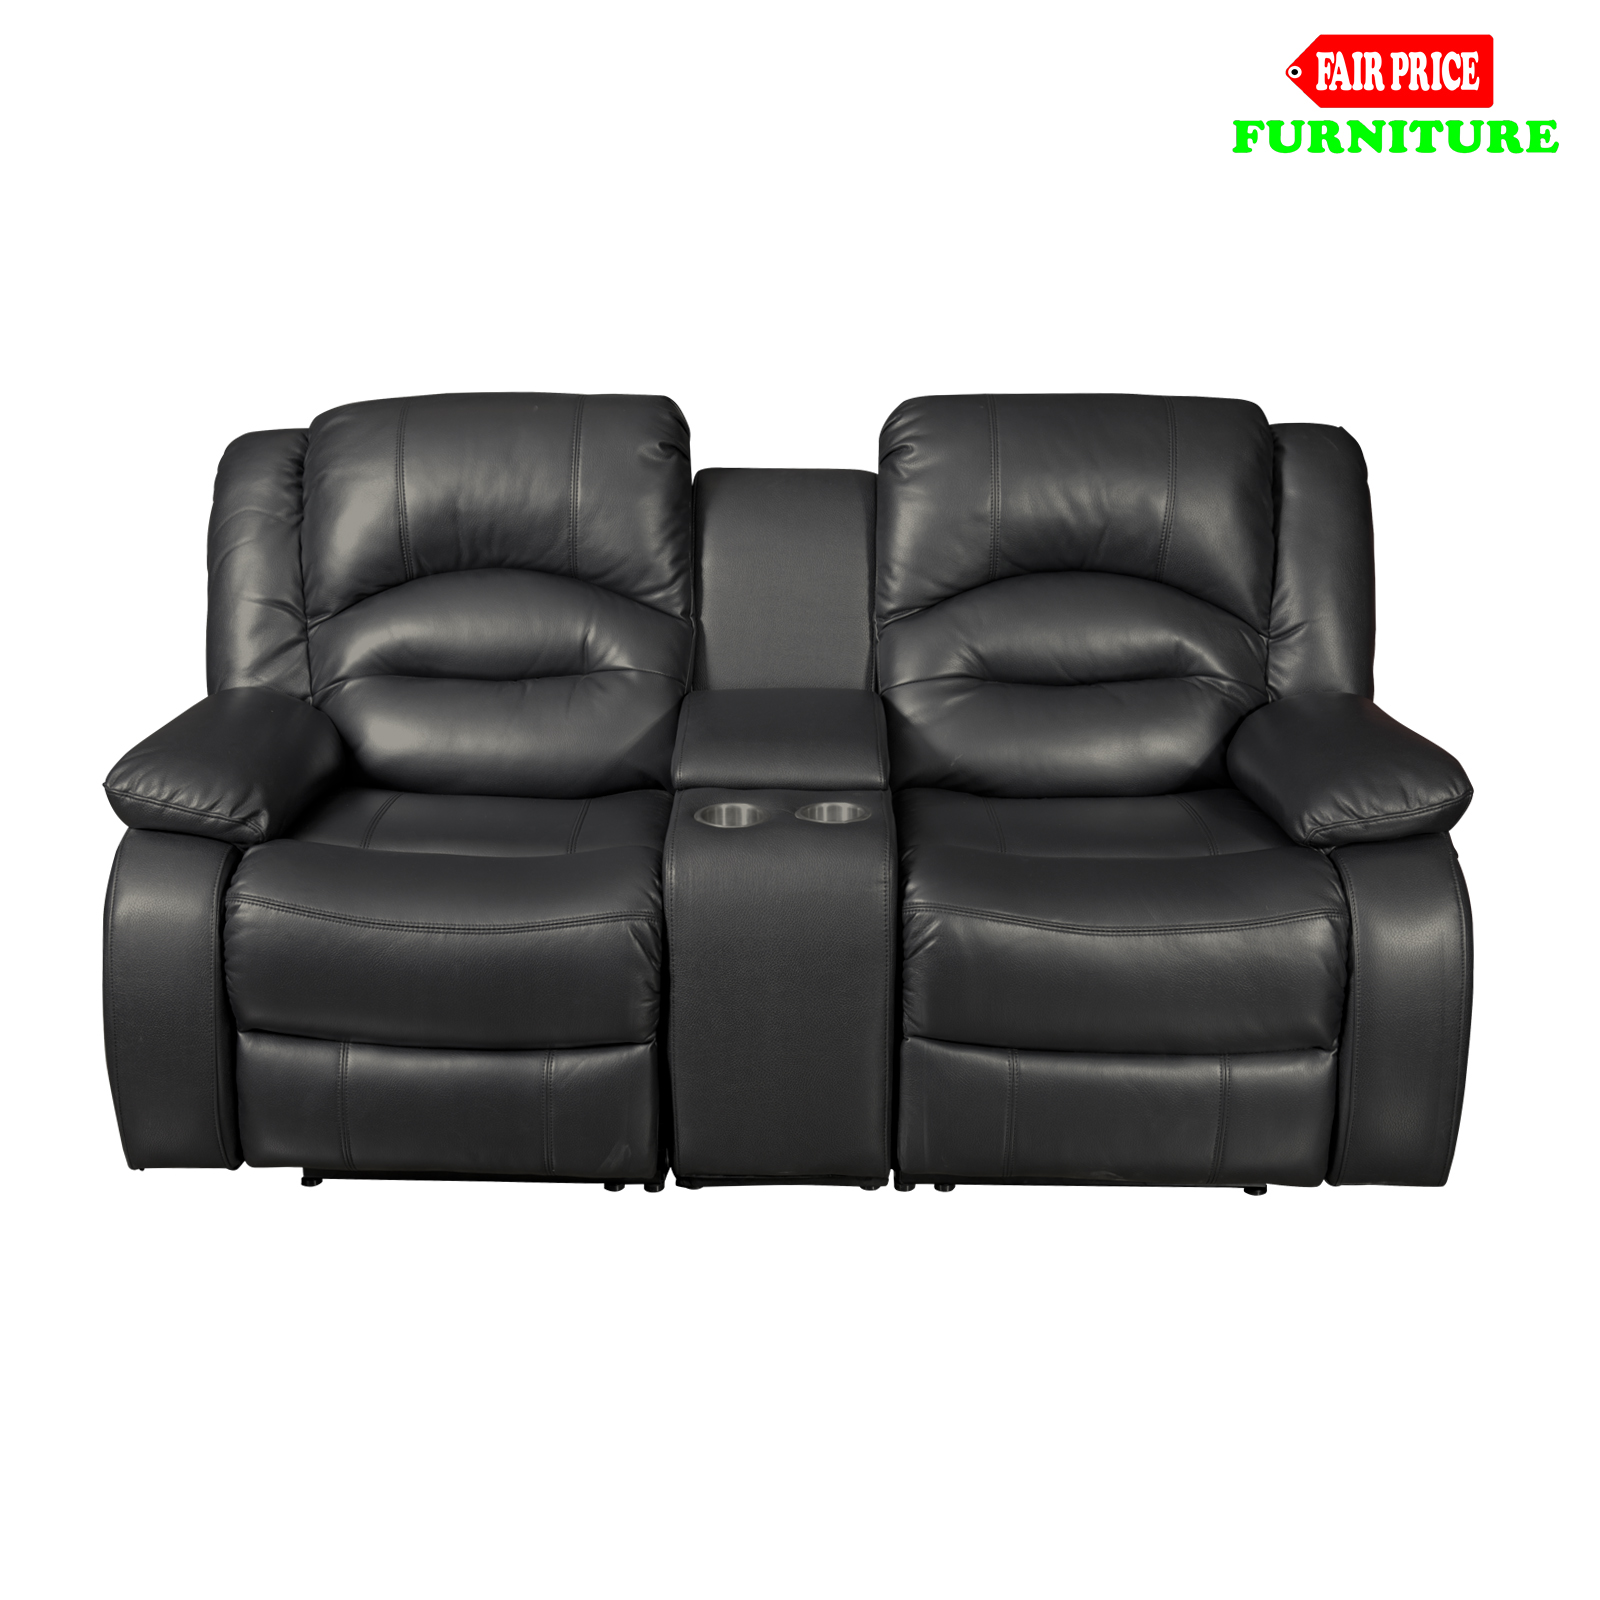 Luxury Hollywood Black Leather Air 3 2 5 Seater Home